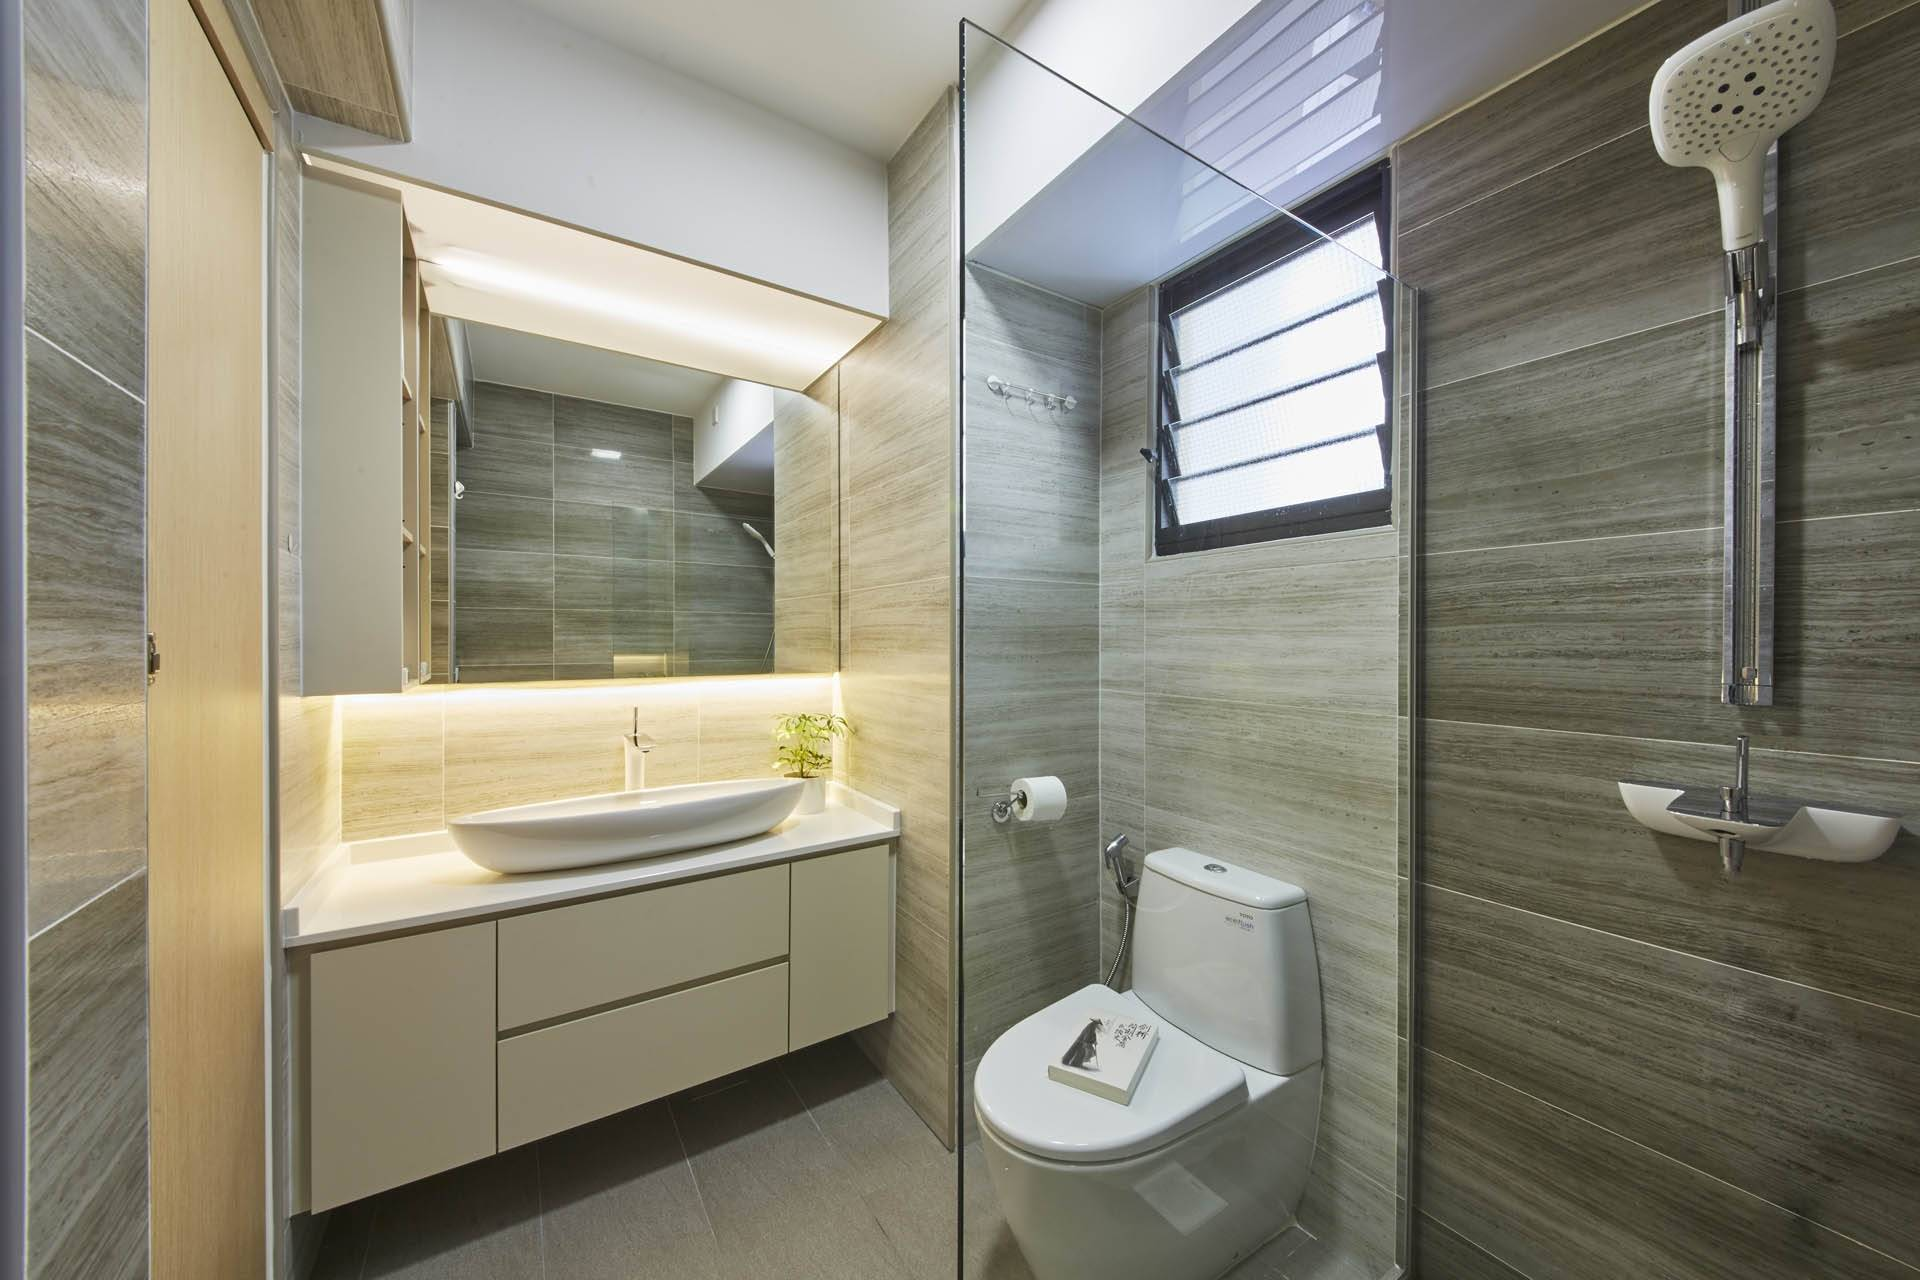 Hdb bathroom design for Design of the bathroom